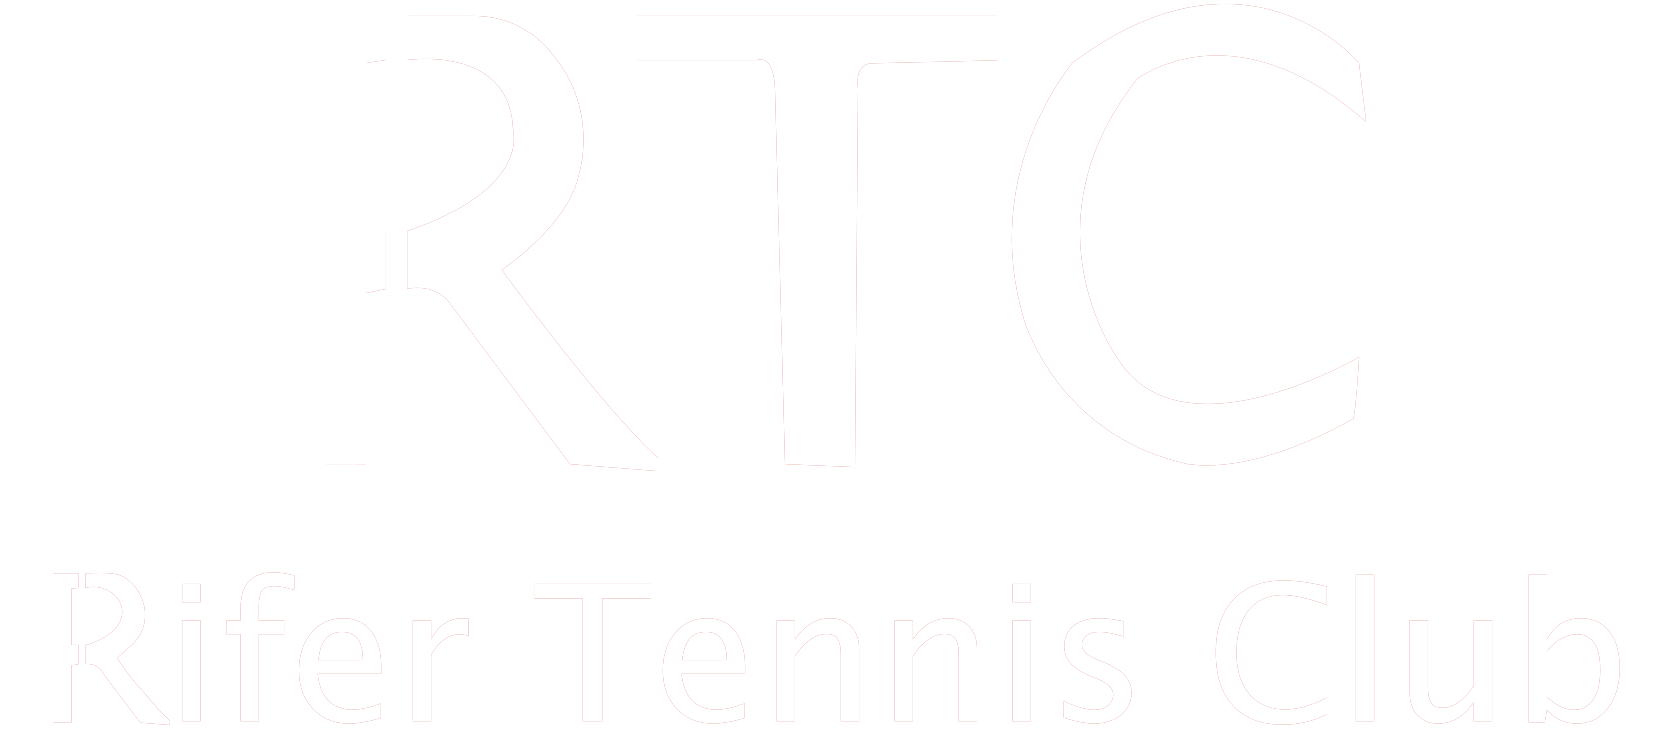 RTC – Rifer Tennis Club